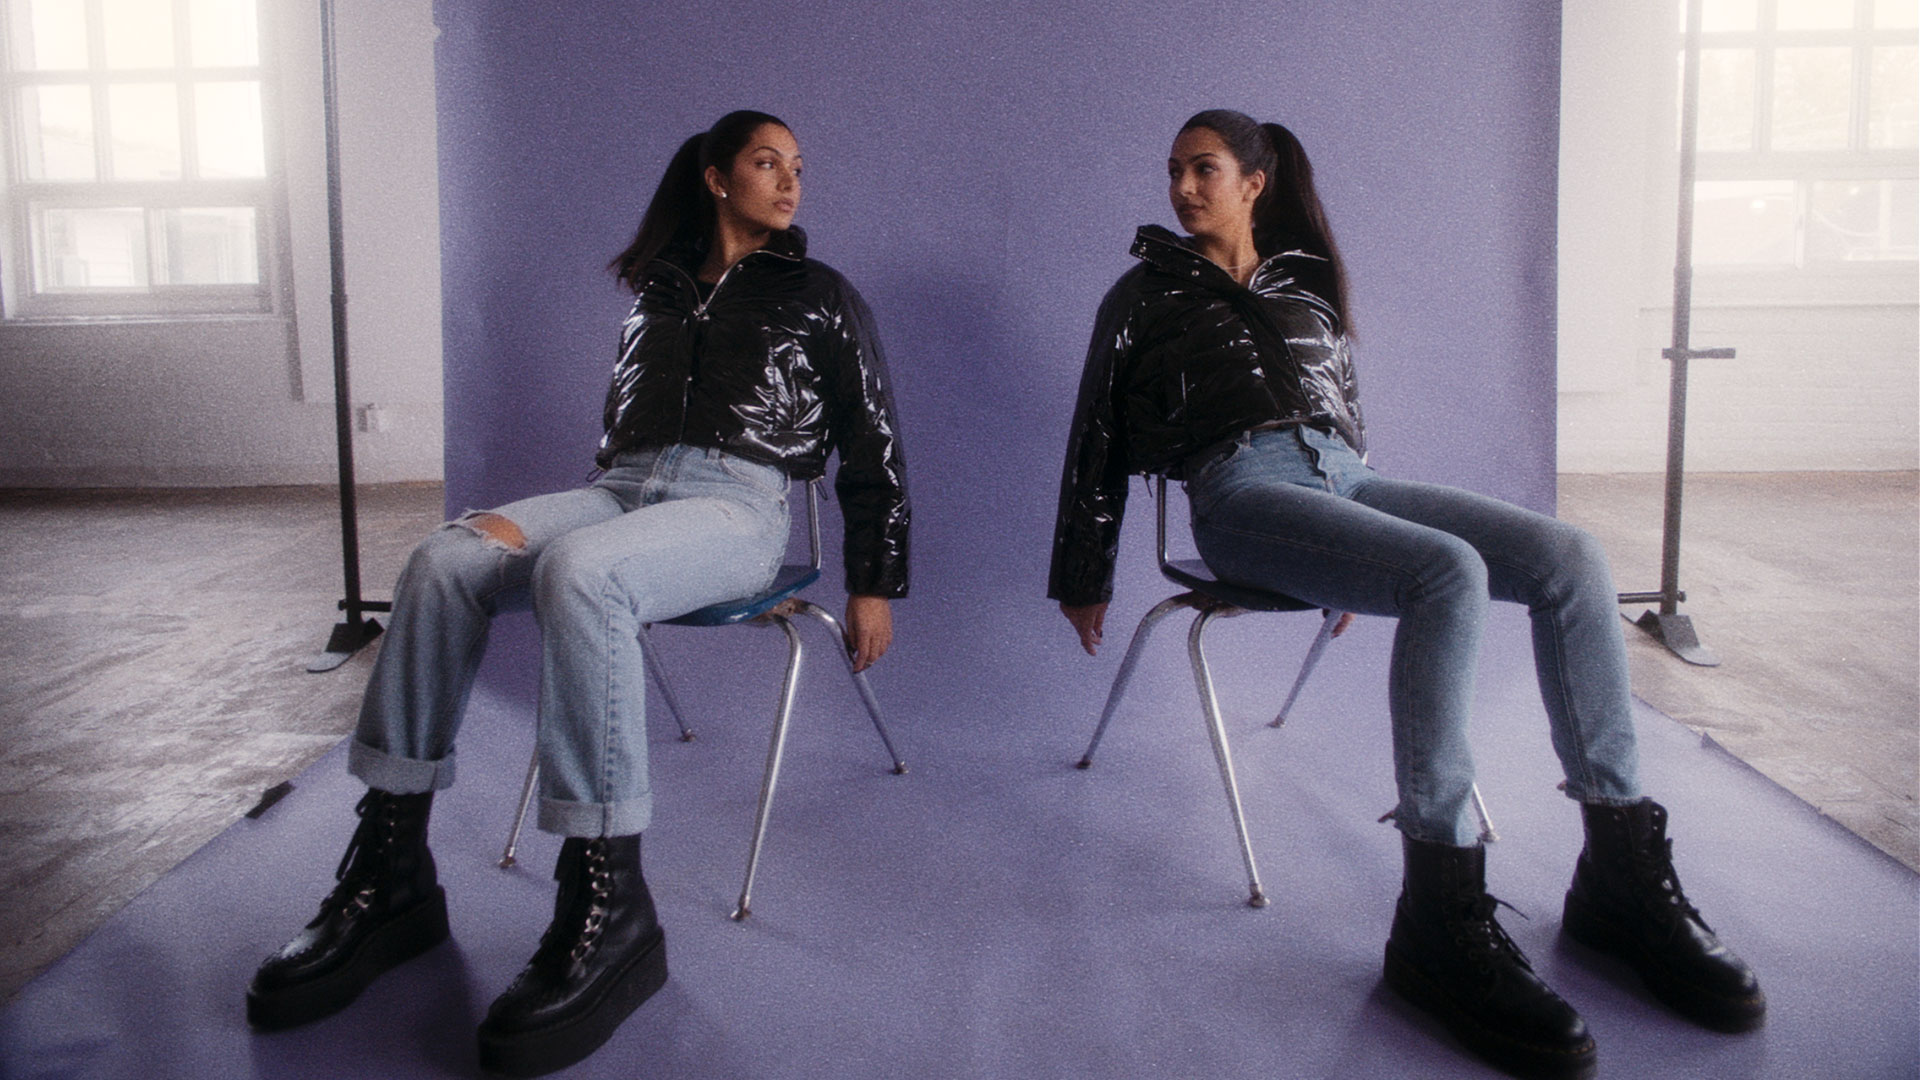 Two woman pose sitting down in chairs facing 45 degree angle away from one another in front of a lavender photoshoot backdrop in a studio